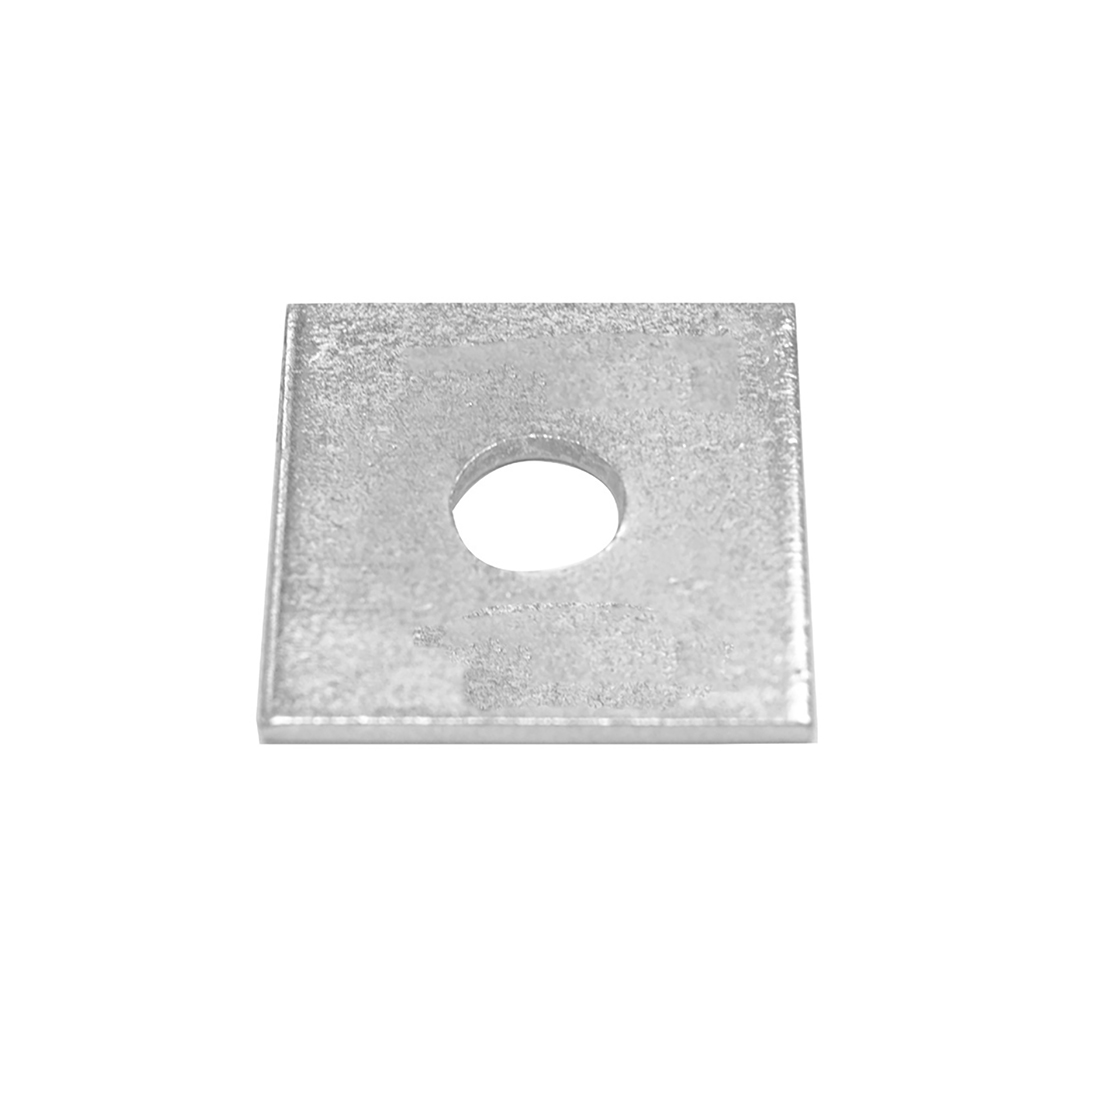 Bright Zinc Plated Square Bracket 1 Hole, 14mm Holes, M12 x 40 x 3mm - Pack of 10